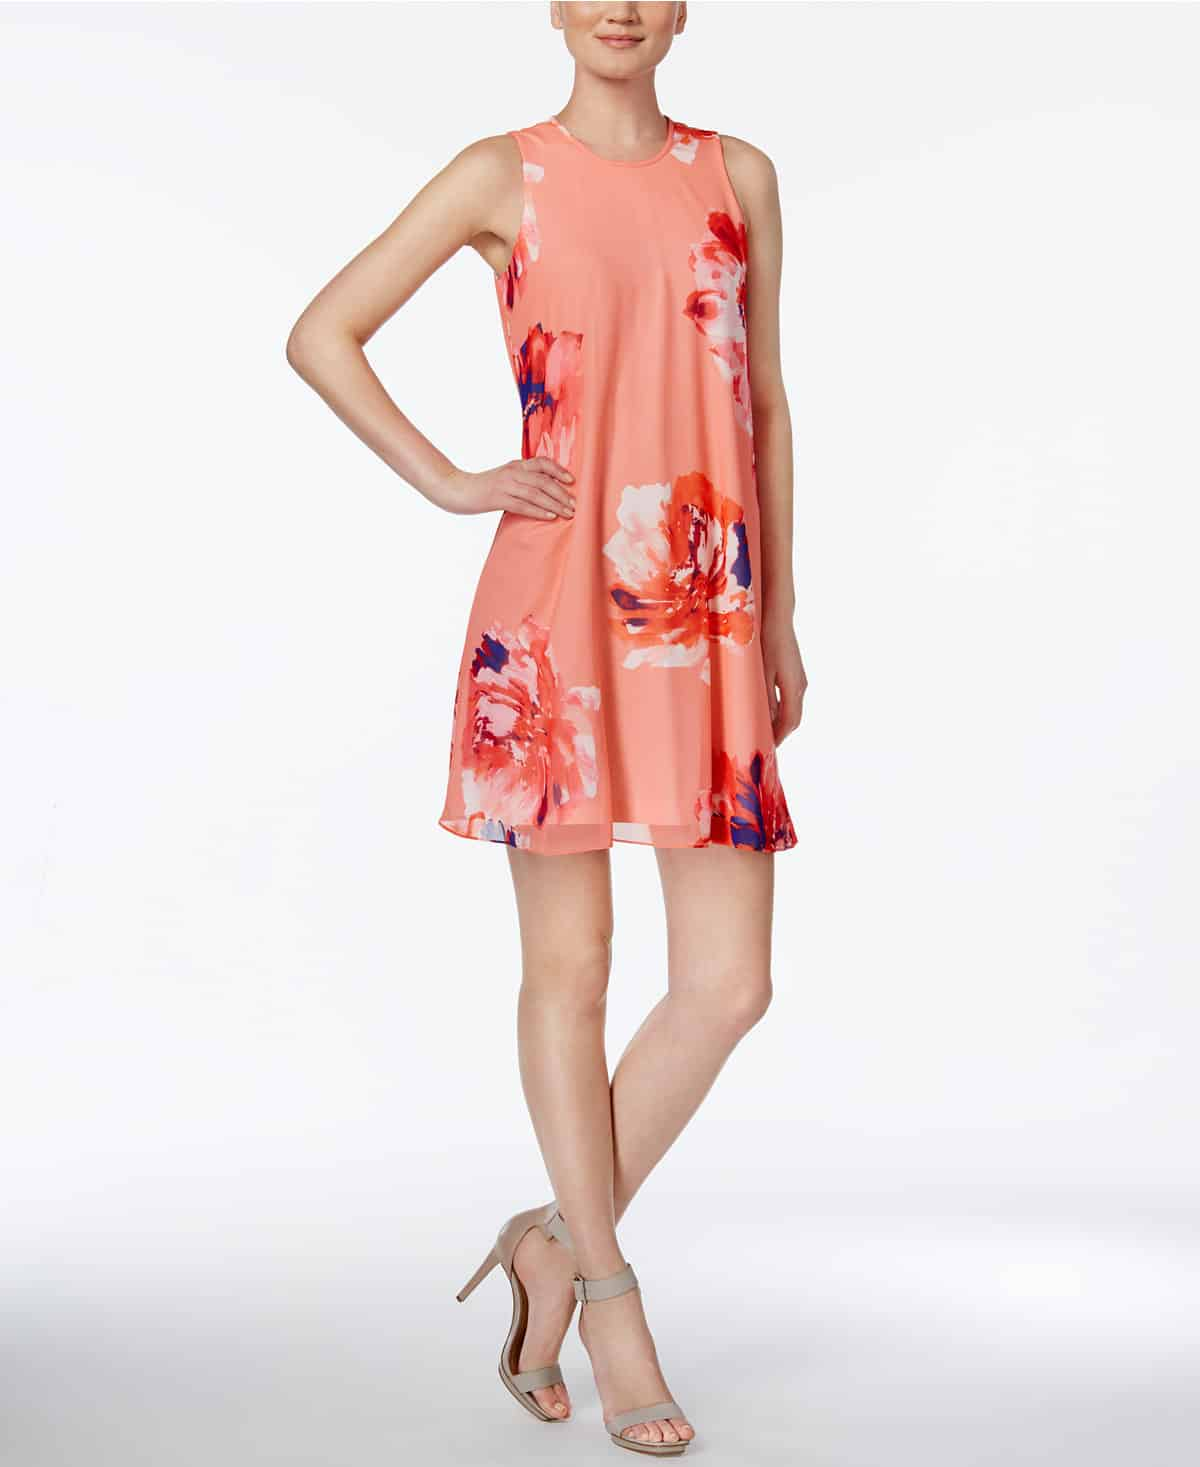 Macy's trapeze dress in peach floral